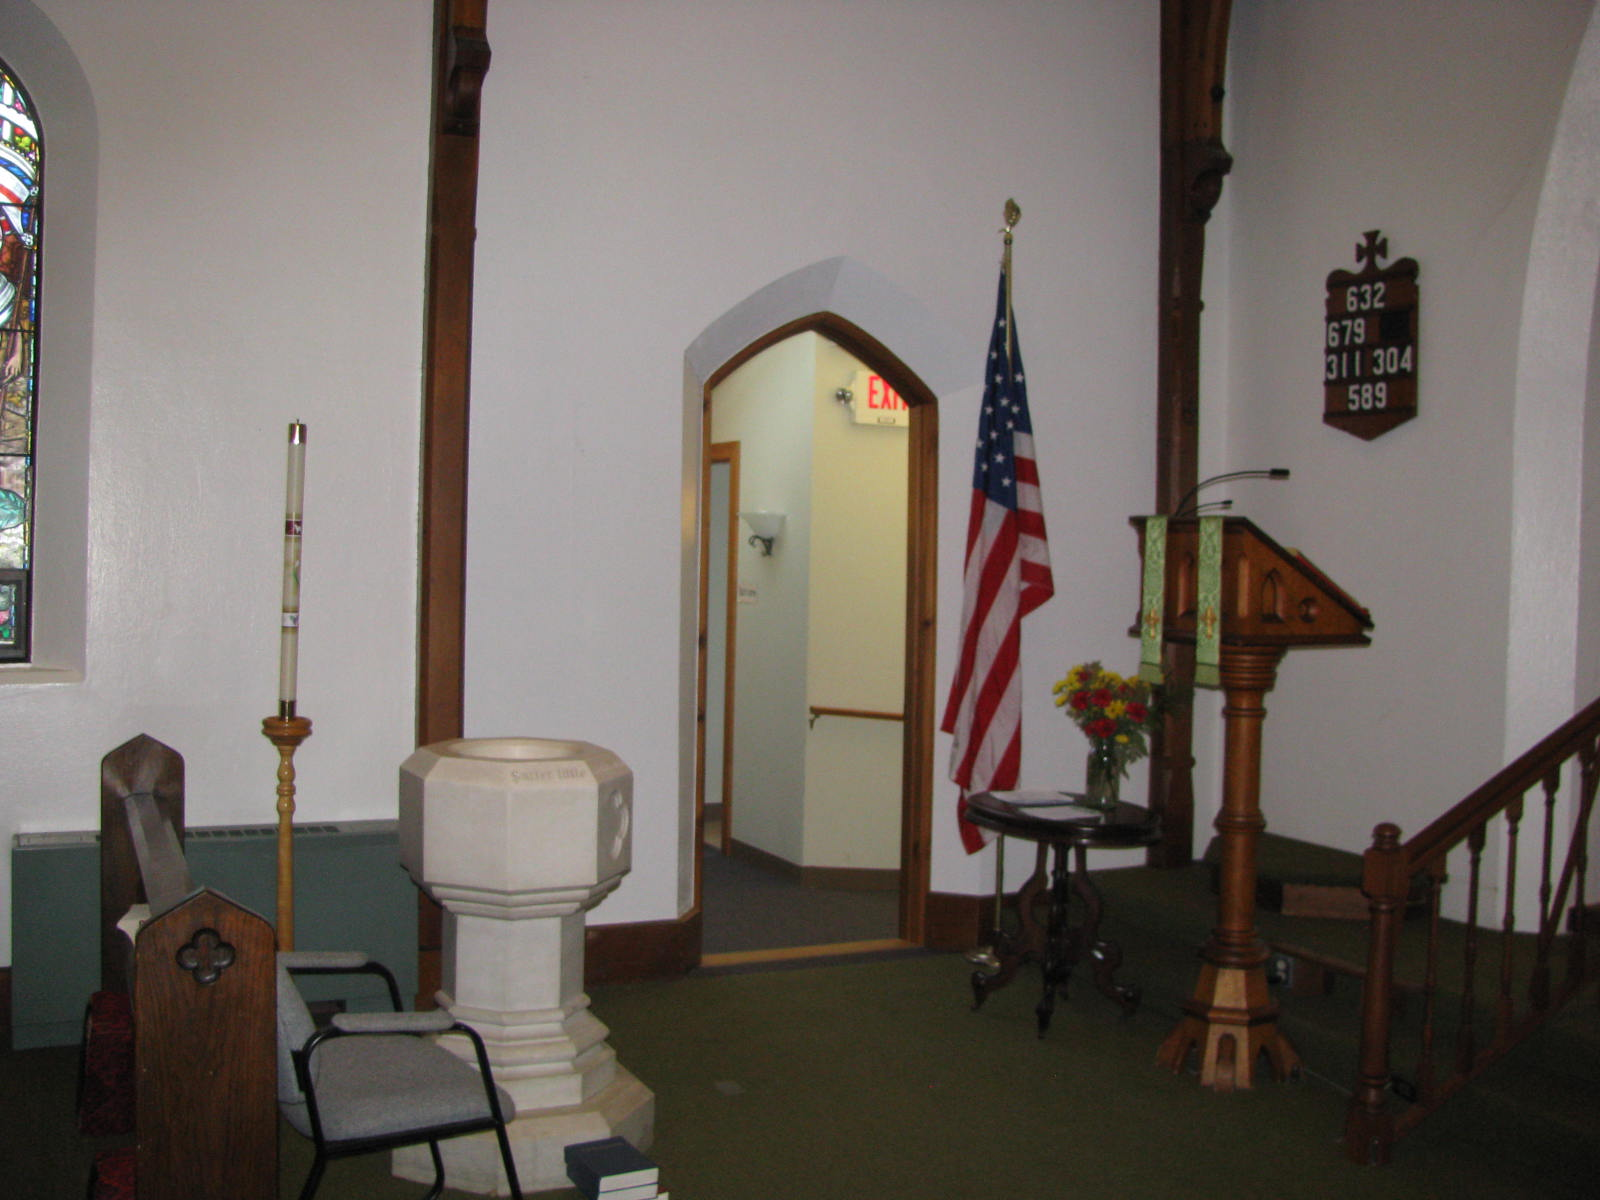 Exit to Bathrooms and Fellowship Hall